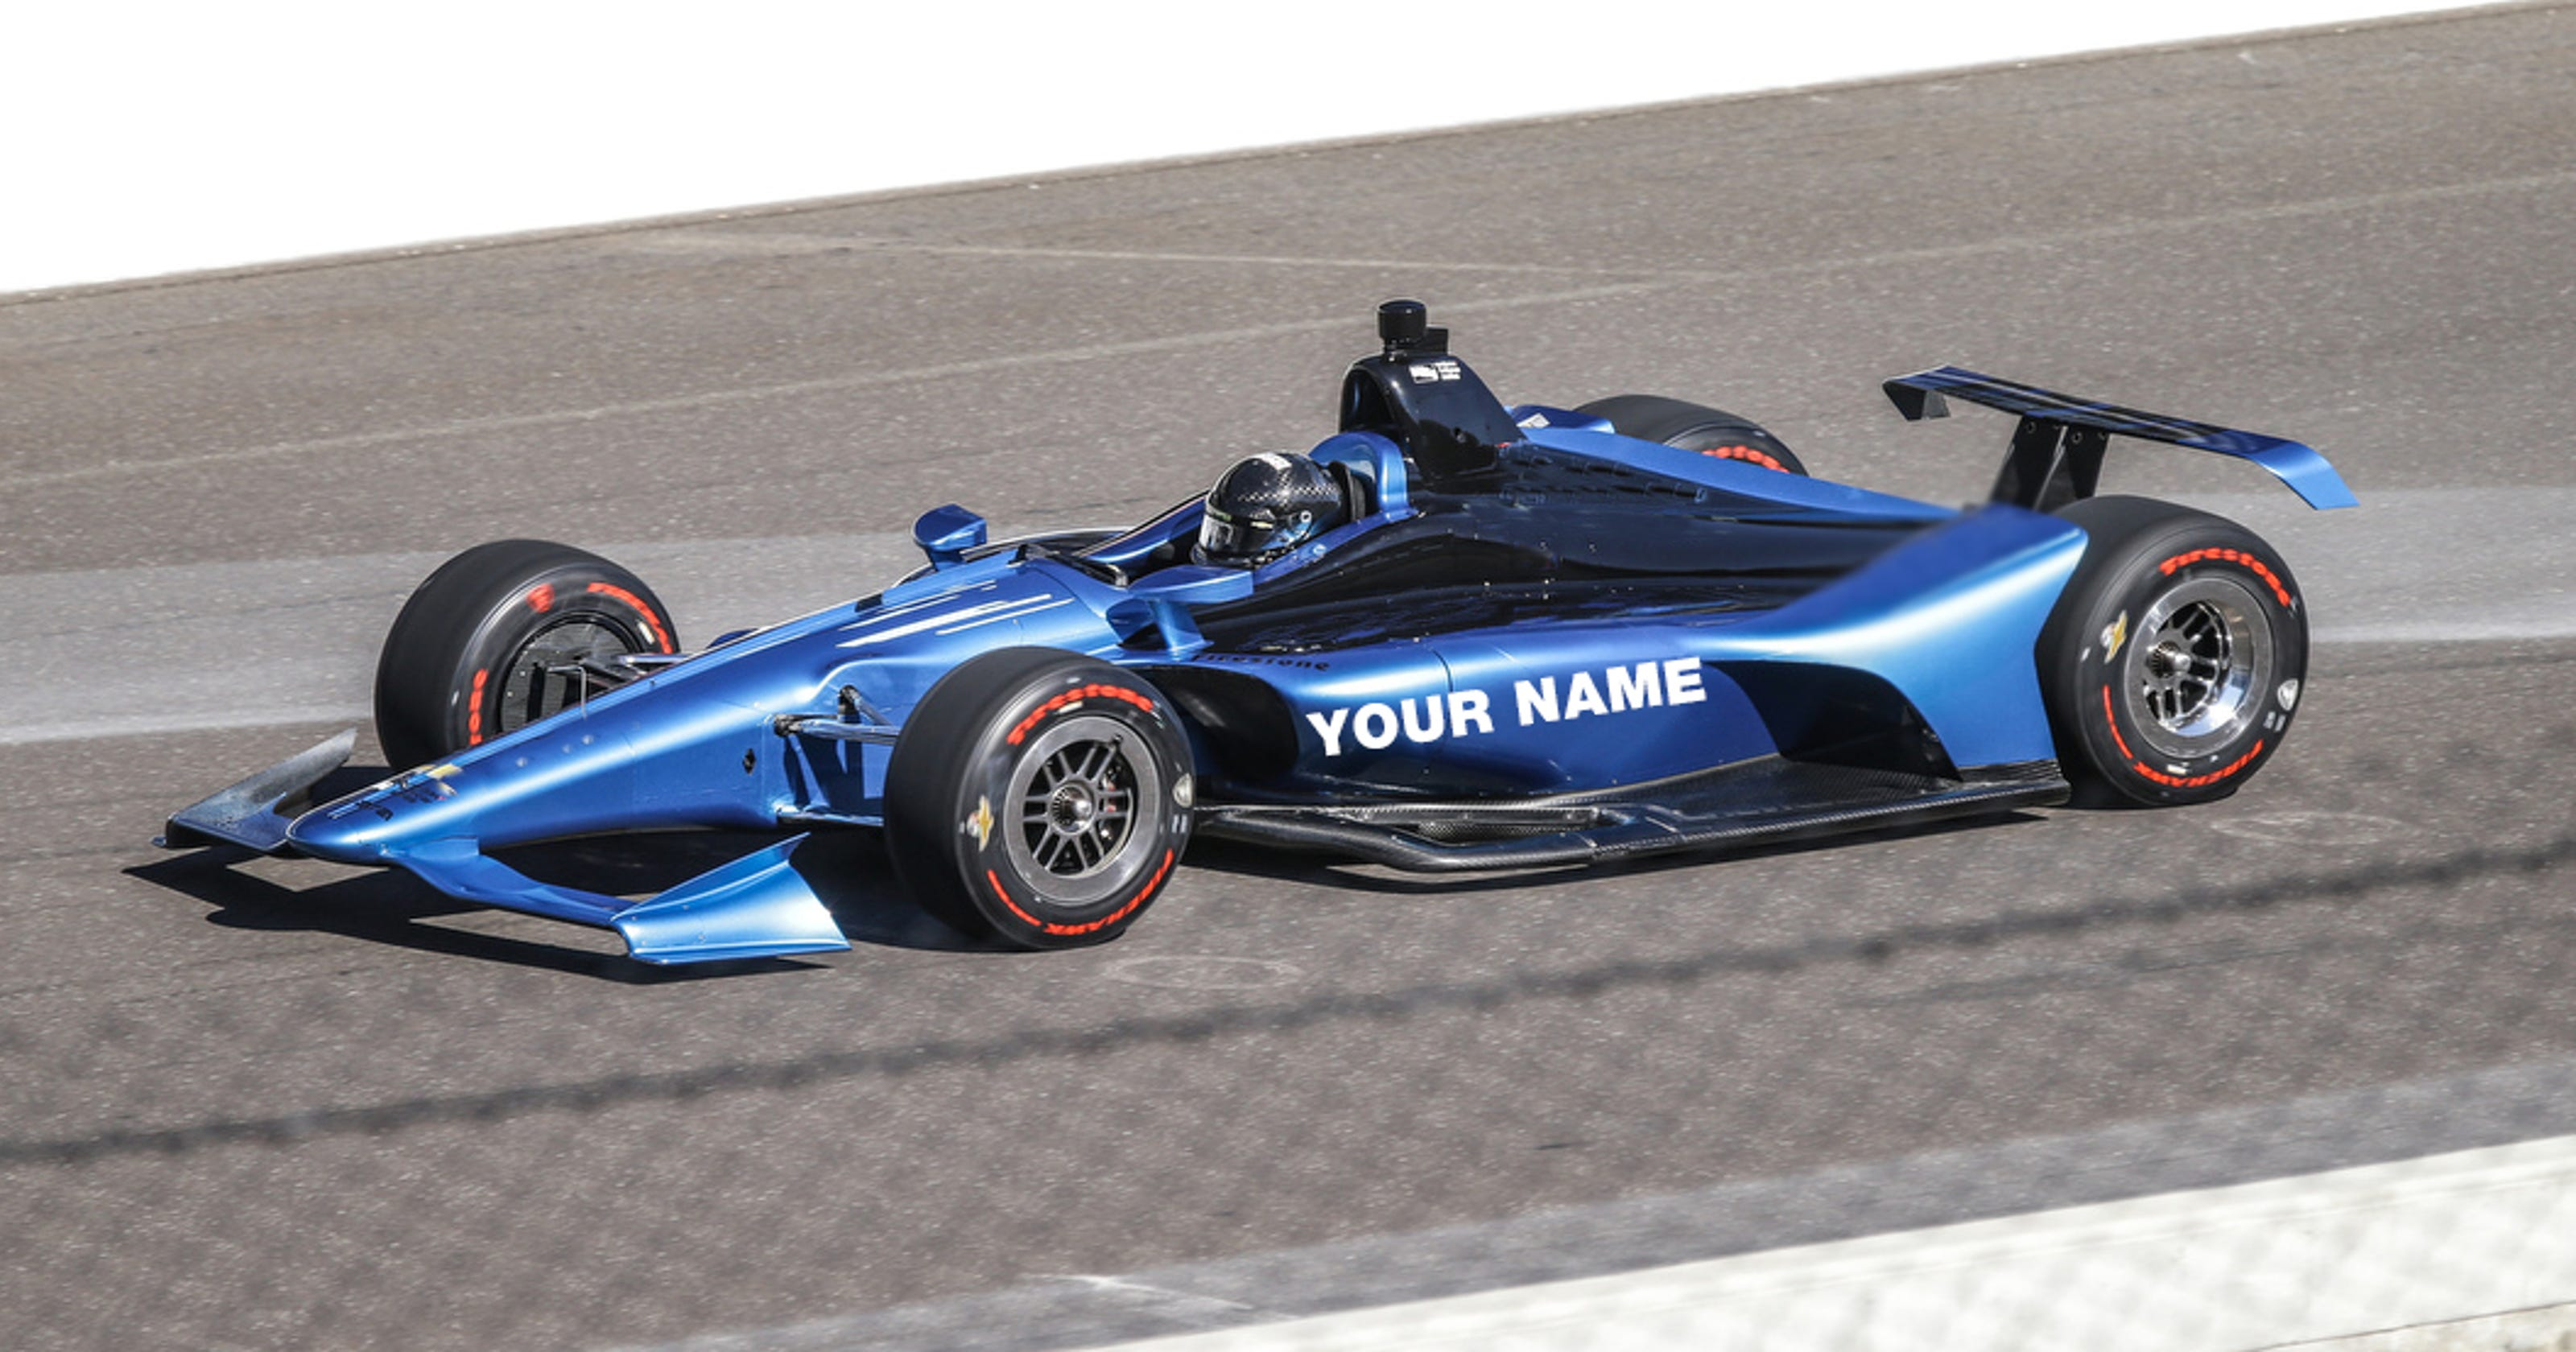 So you want to enter the Indy 500?